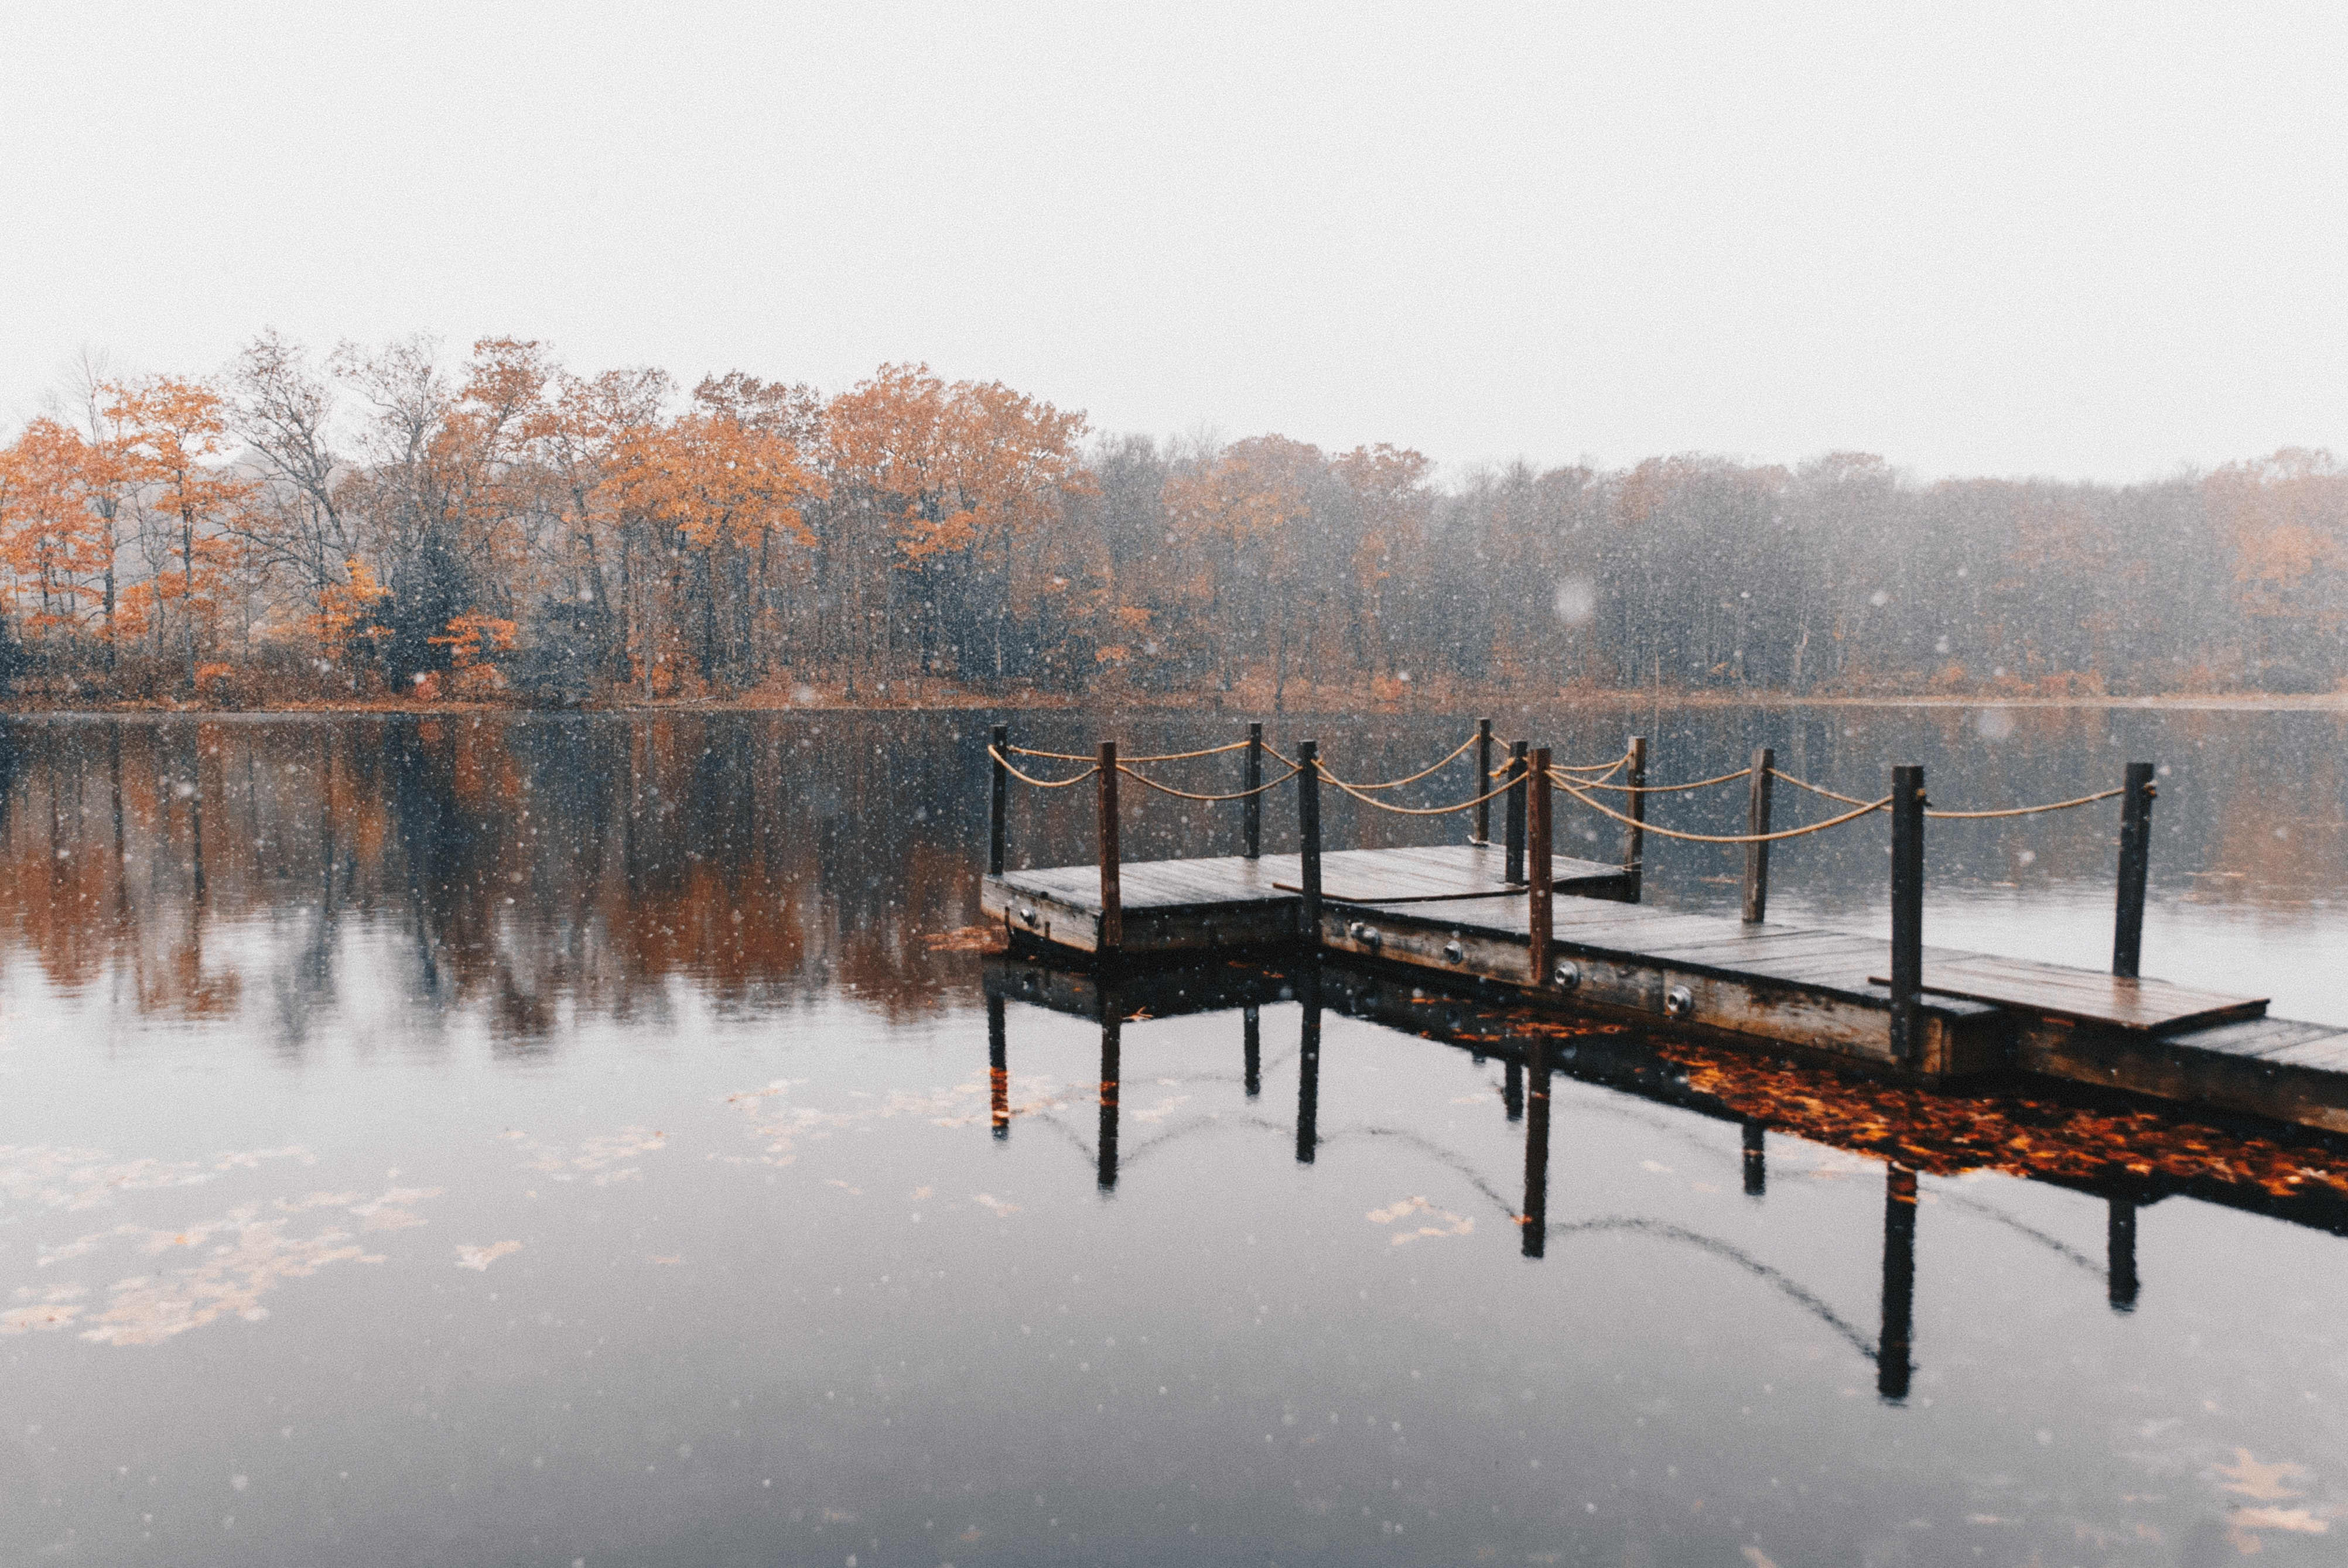 brown dock on body of water